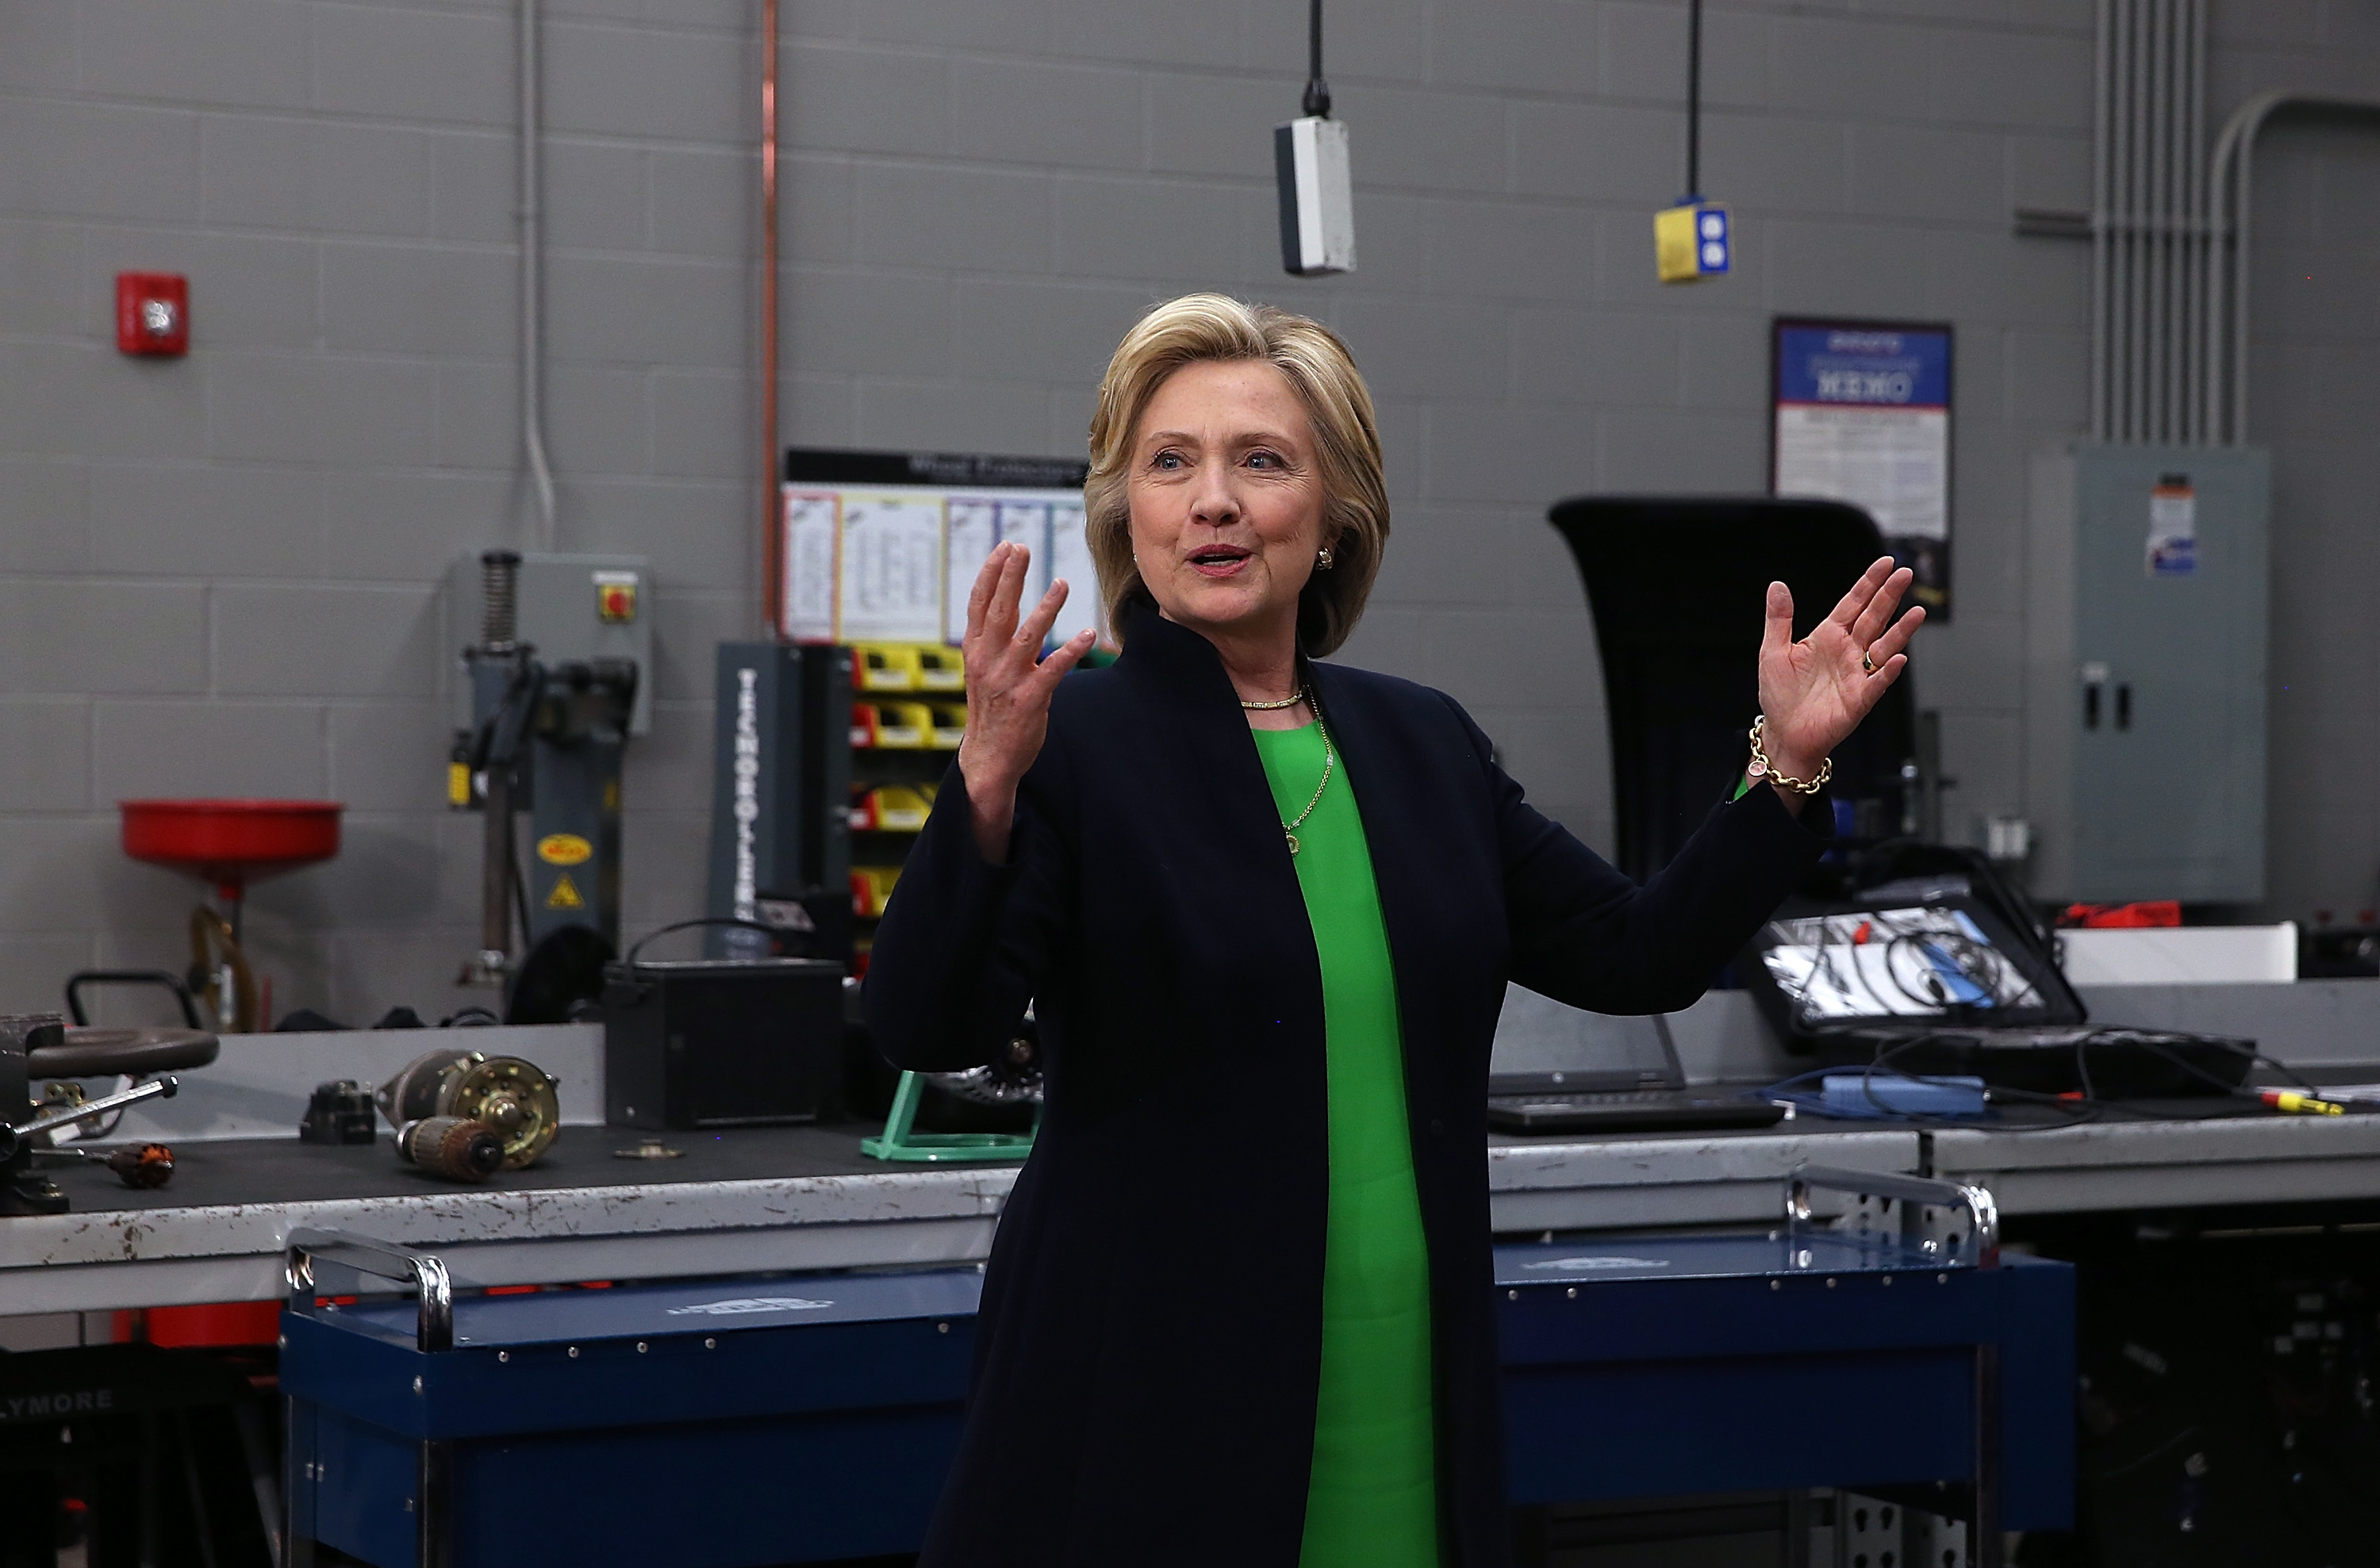 """Monticello, IA - April 14: At a community college in Iowa, Clinton said exactly what the left wanted her to say. """"There's something wrong when hedge fund managers pay lower tax rates than nurses or the truckers that I saw on I-80 as I was driving here,"""" Clinton said."""